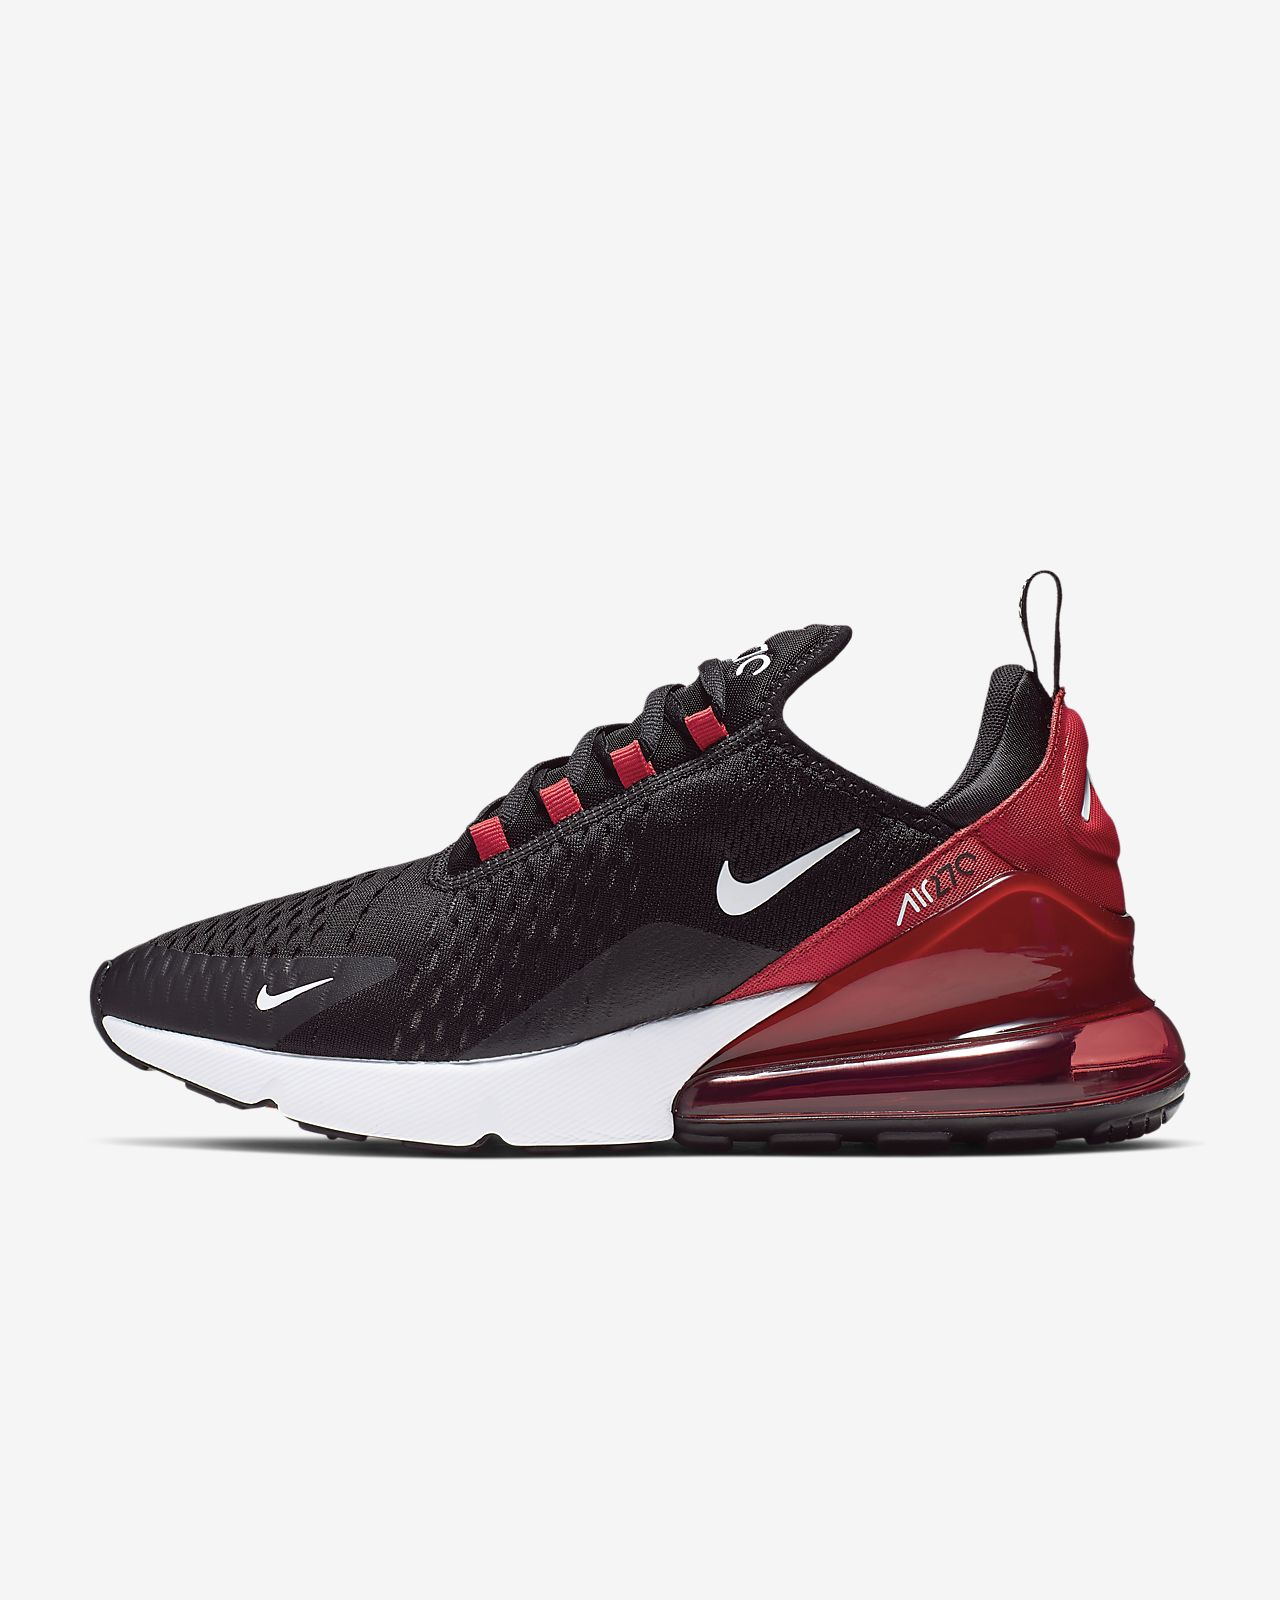 43b5cb7dc6fc4 Nike Air Max 270 Men s Shoe. Nike.com GB